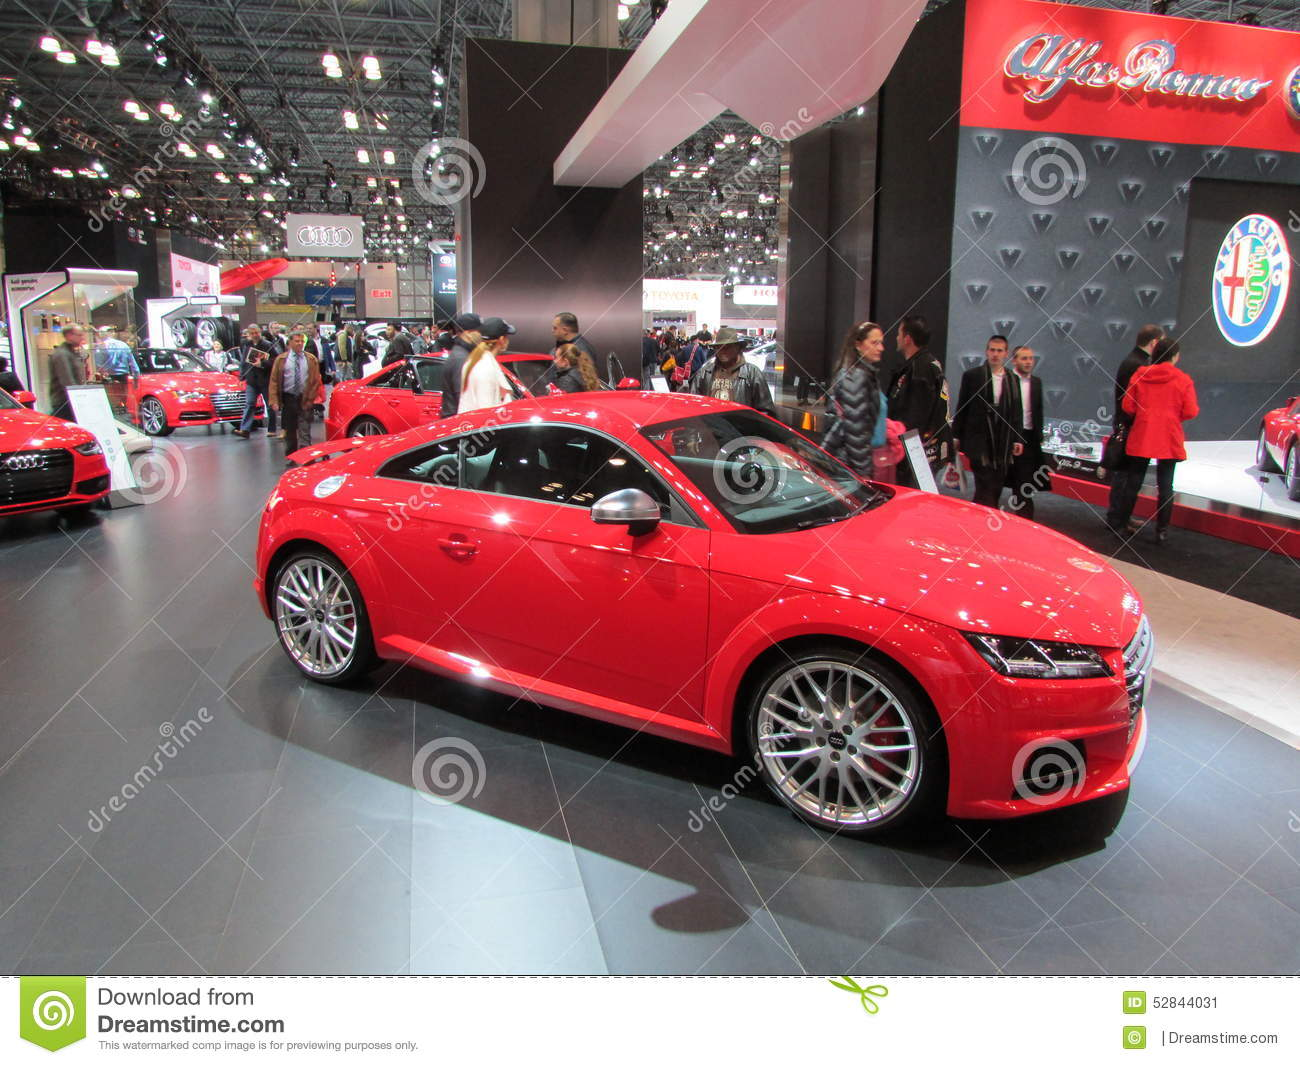 Audi na frente do logotipo de Alfa Romeo na tela Feira automóvel 2015 do International de New York